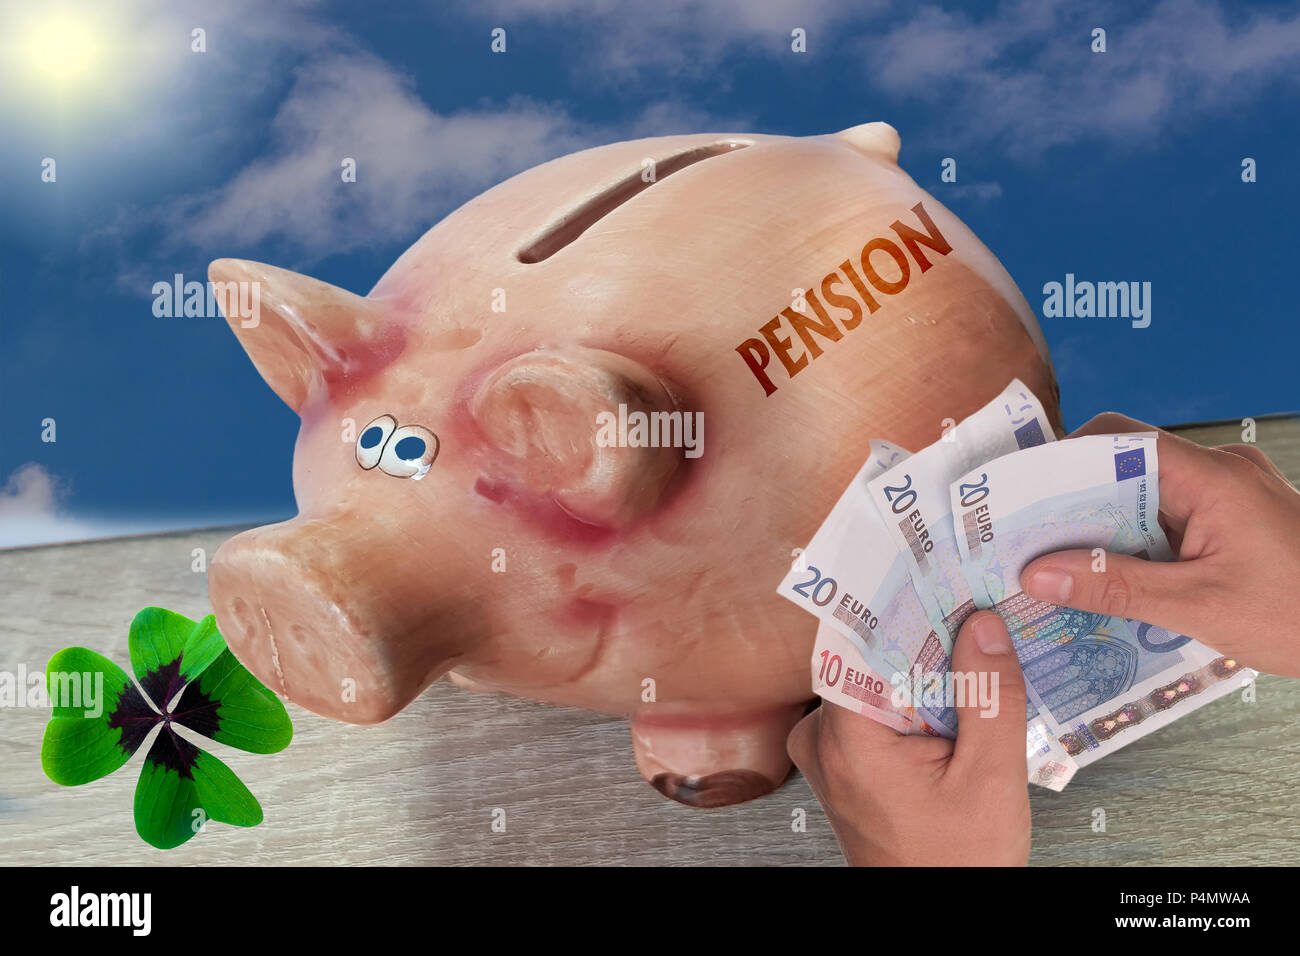 Piggy bank, lucky pig with lettering Pension stands on wooden surface in front of blue sky background. - Stock Image